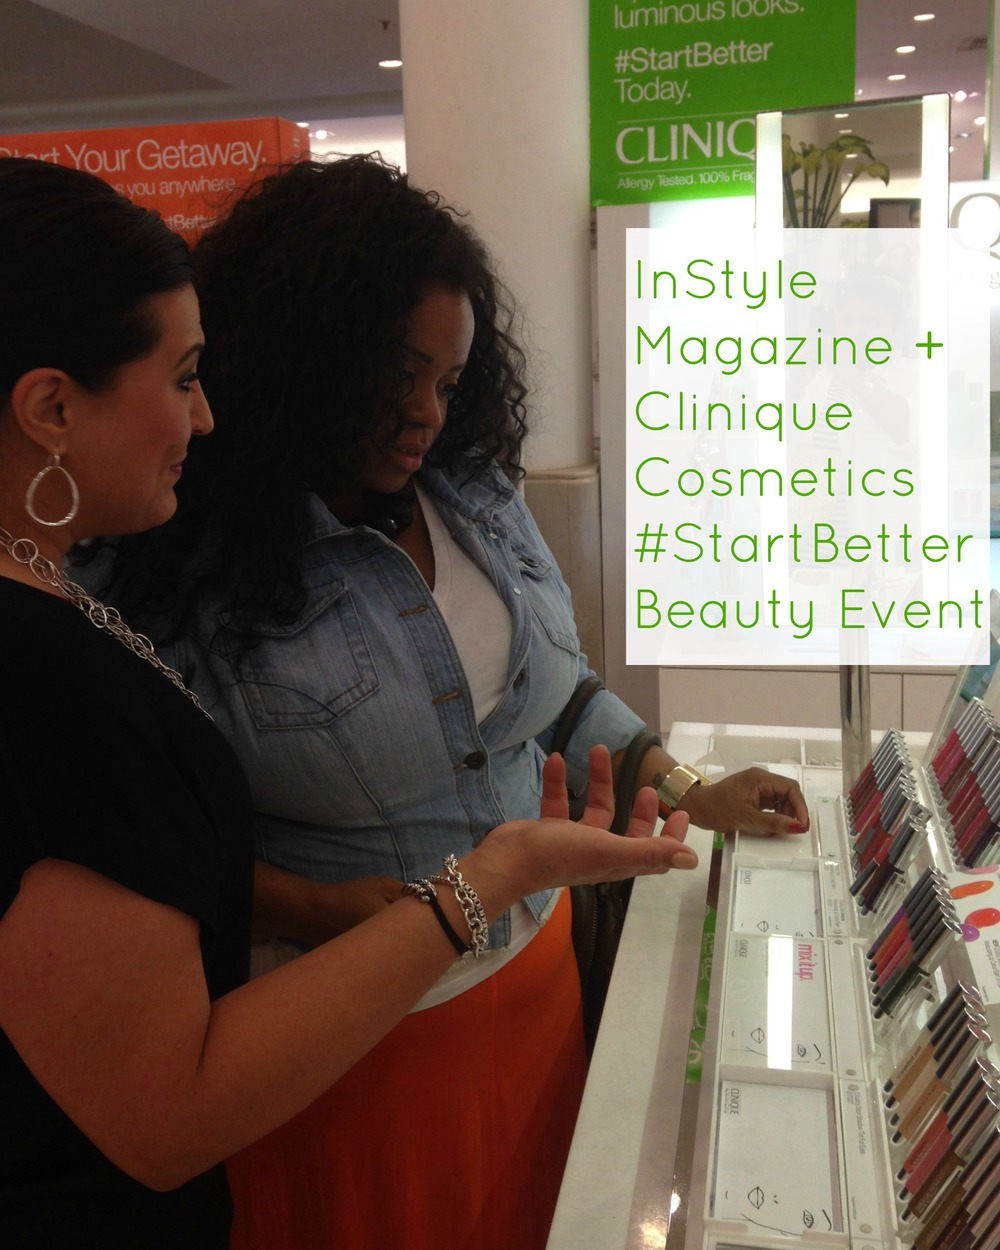 Clinique + InStyle Magazine #StartBetter Beauty Event with Tai Beauchamp